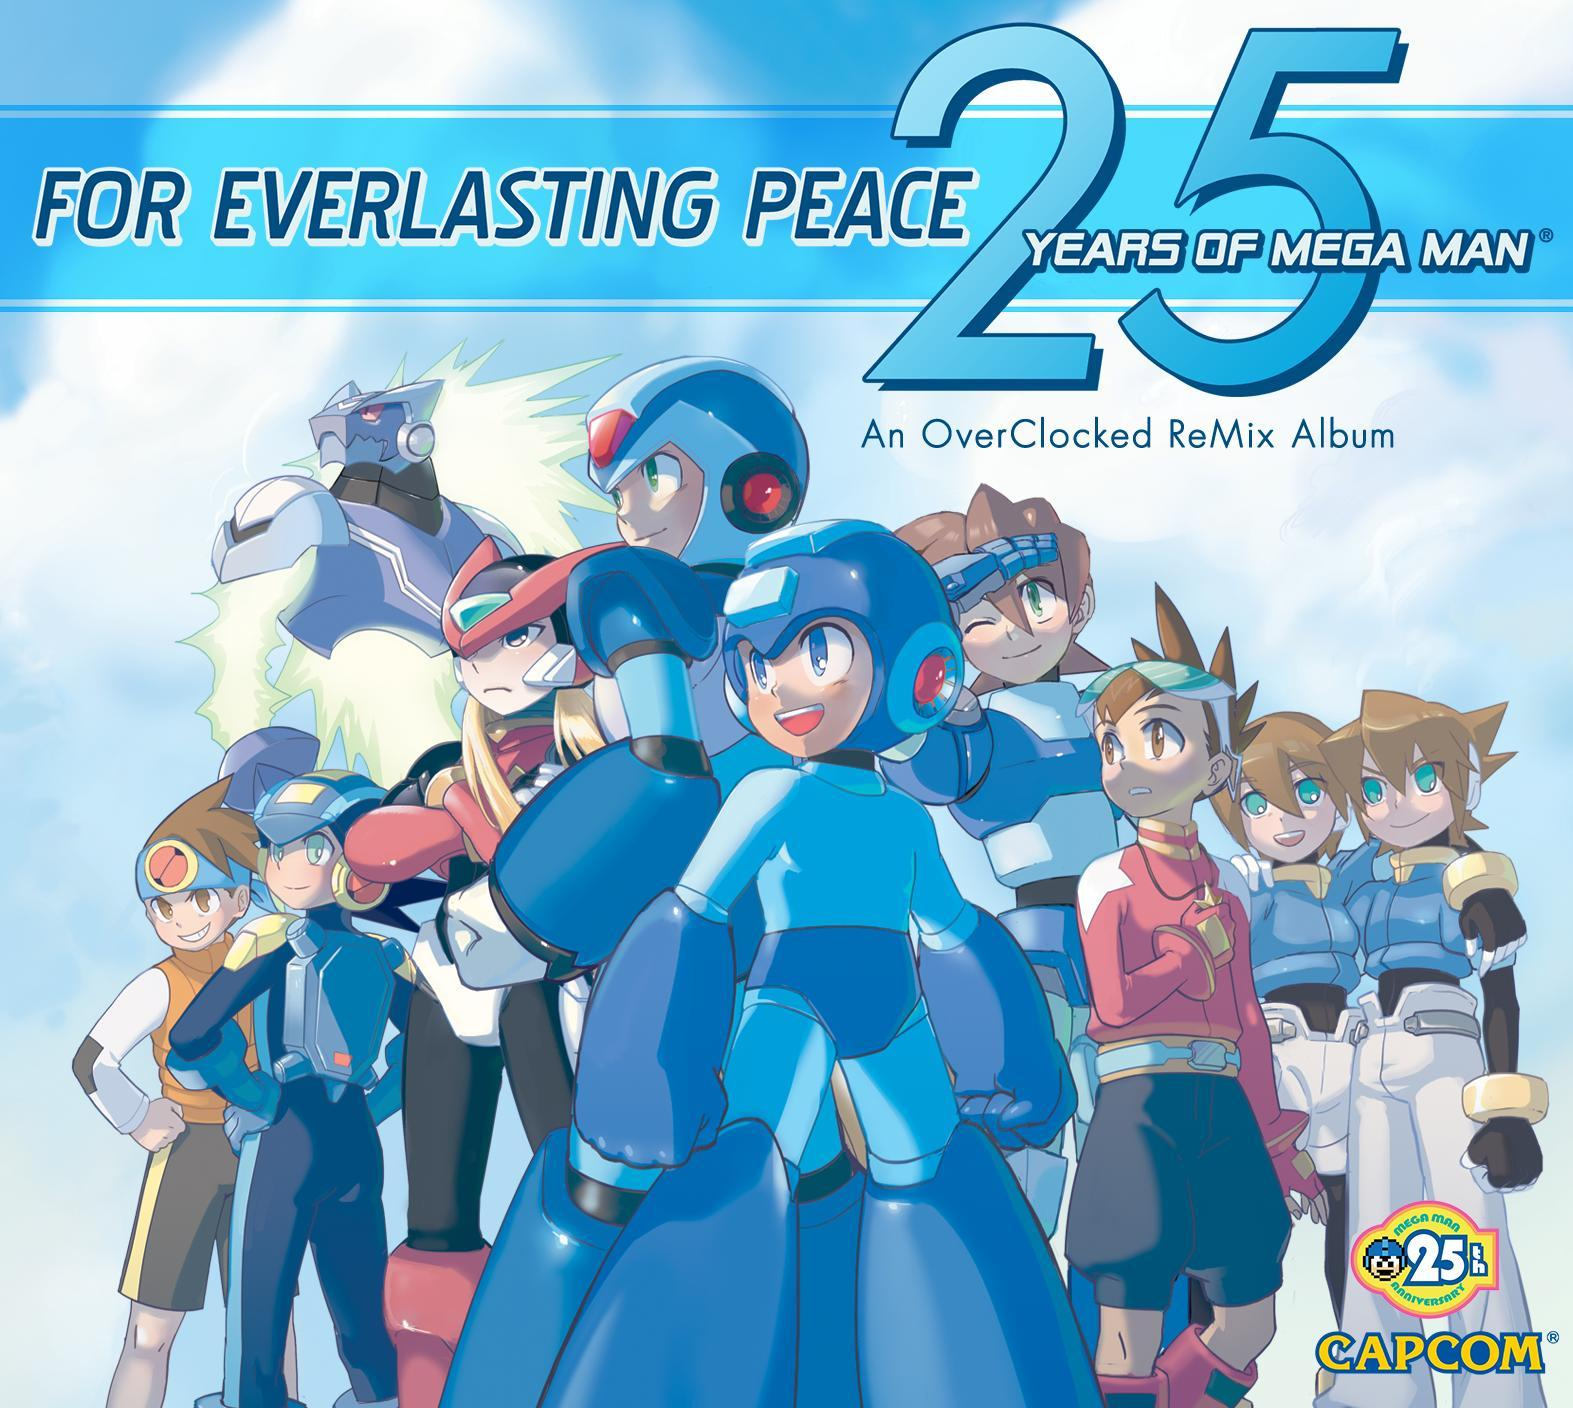 For Everlasting Peace: 25 Years of Mega Man  Soundtrack from For